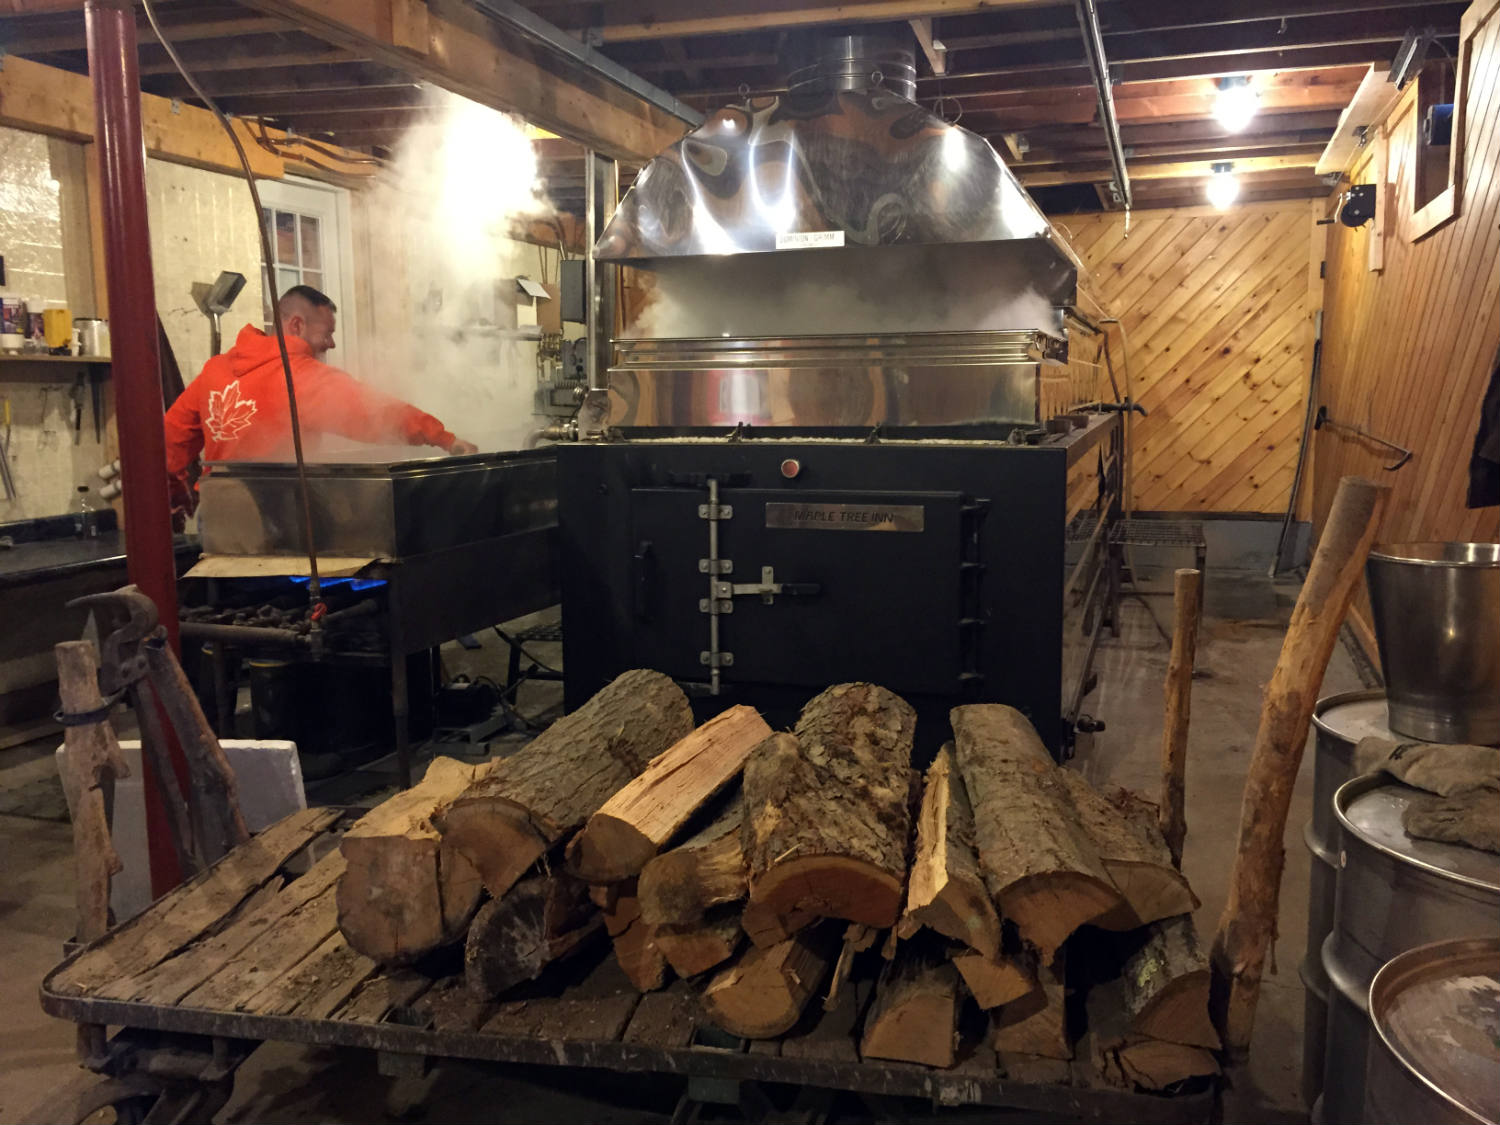 The Evaporator at the Maple Tree Inn in Angelica